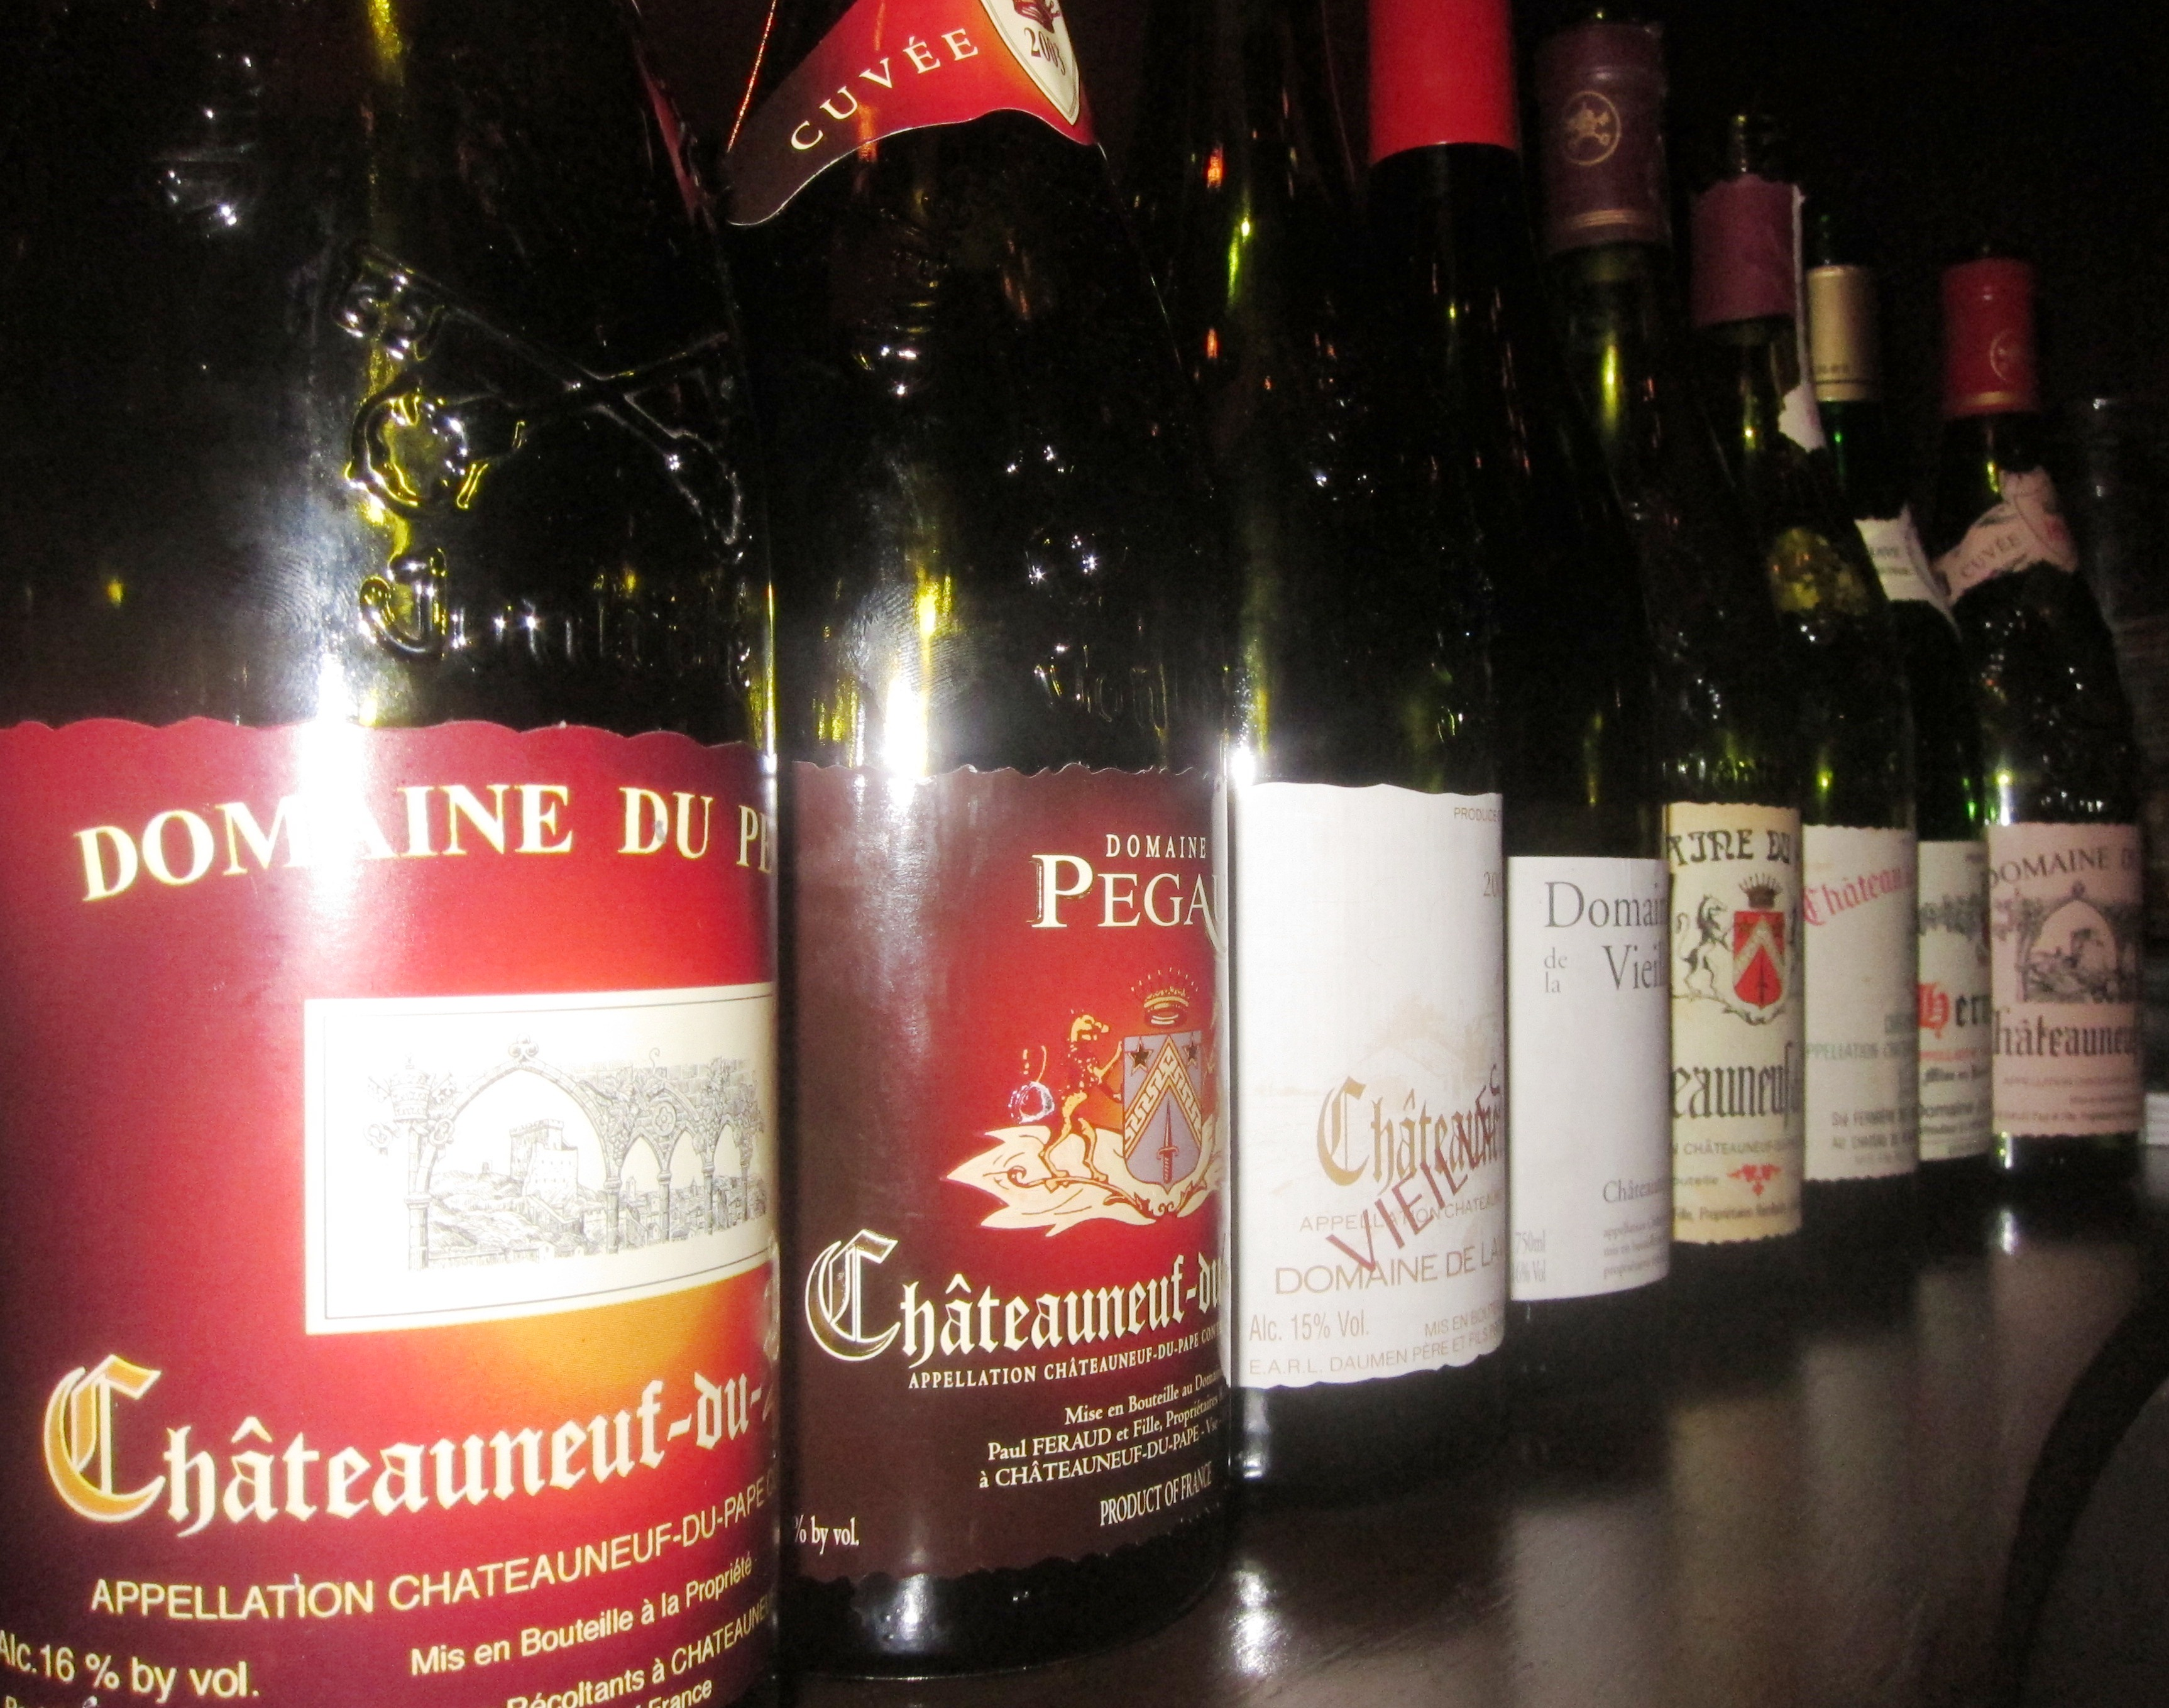 Chateauneuf du Pape Rhone Wines in London at The Ledbury